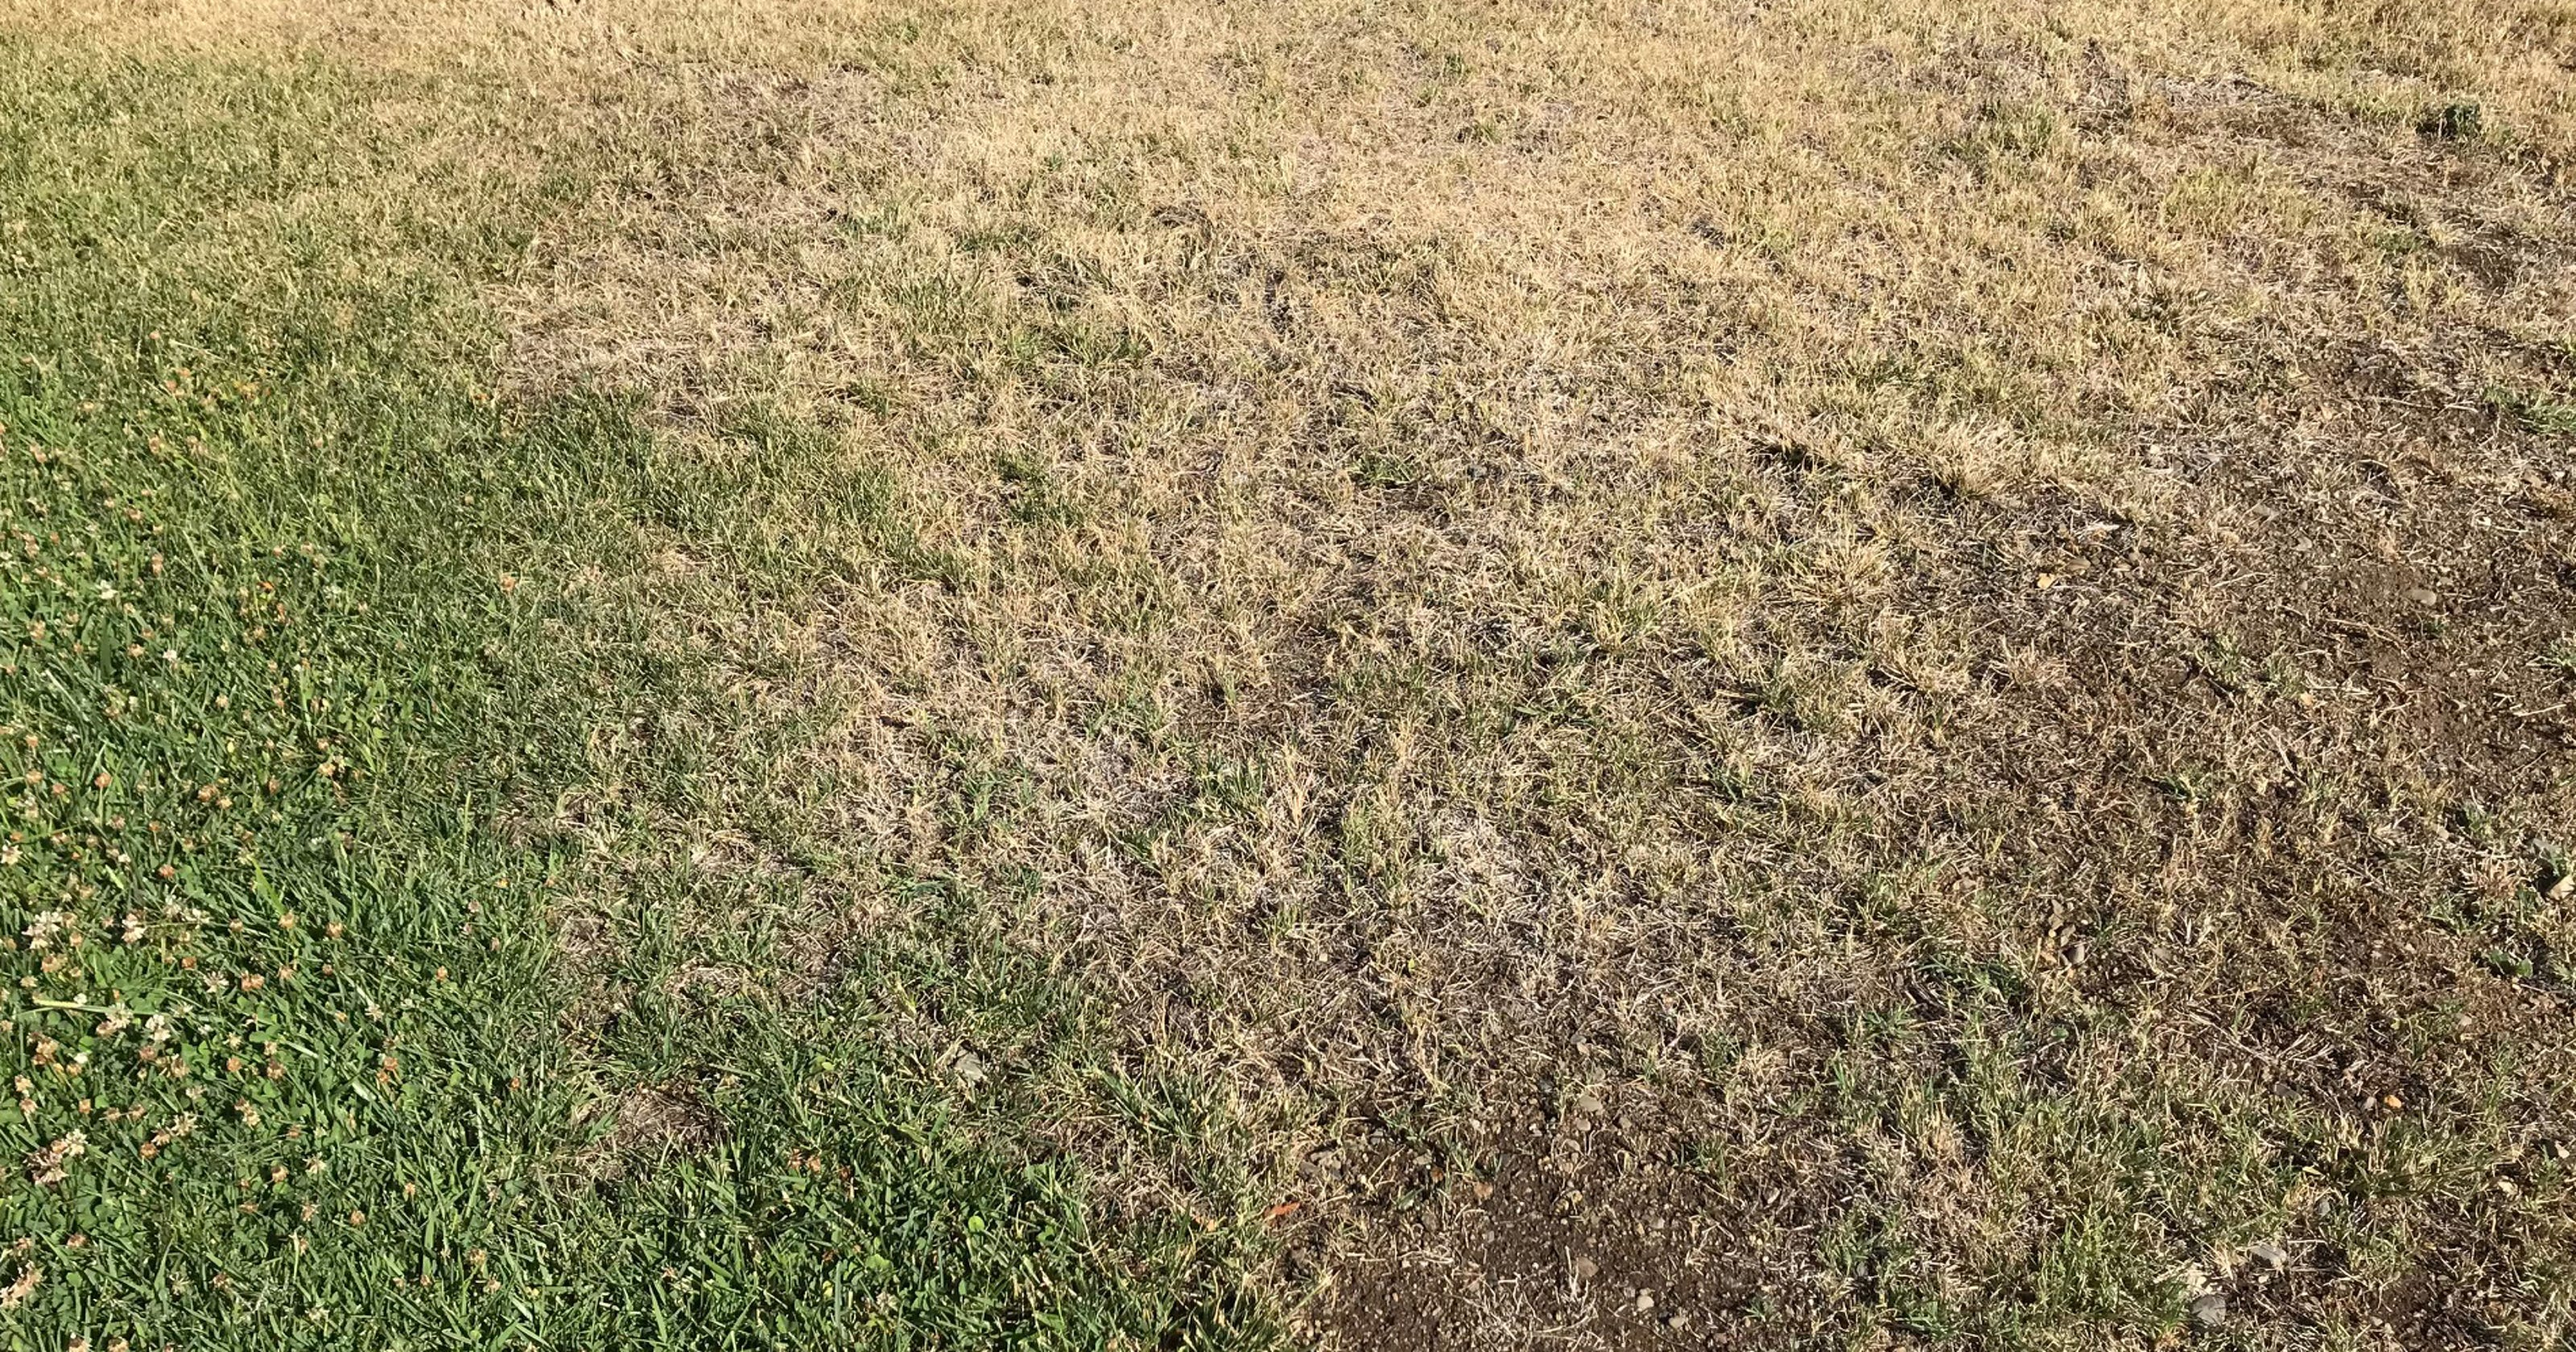 What to do if your lawn gets spotty